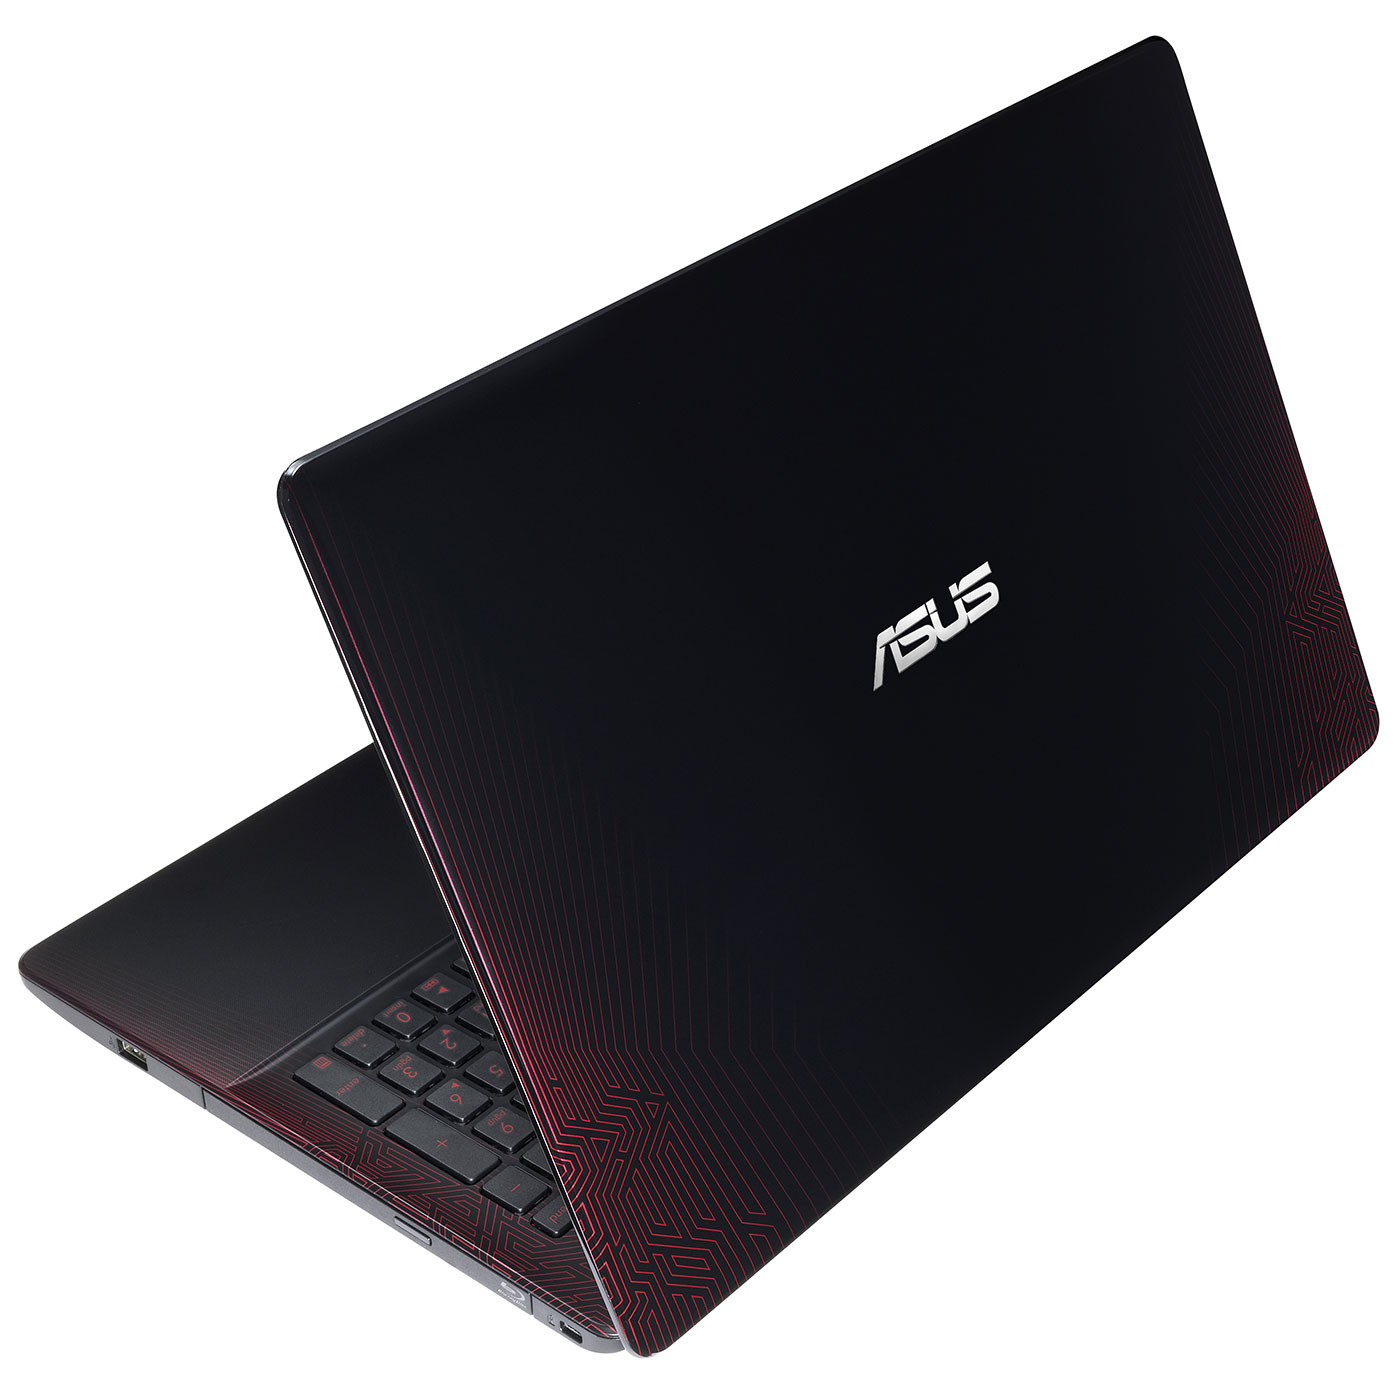 asus r510jx dm225t pc portable asus sur ldlc. Black Bedroom Furniture Sets. Home Design Ideas